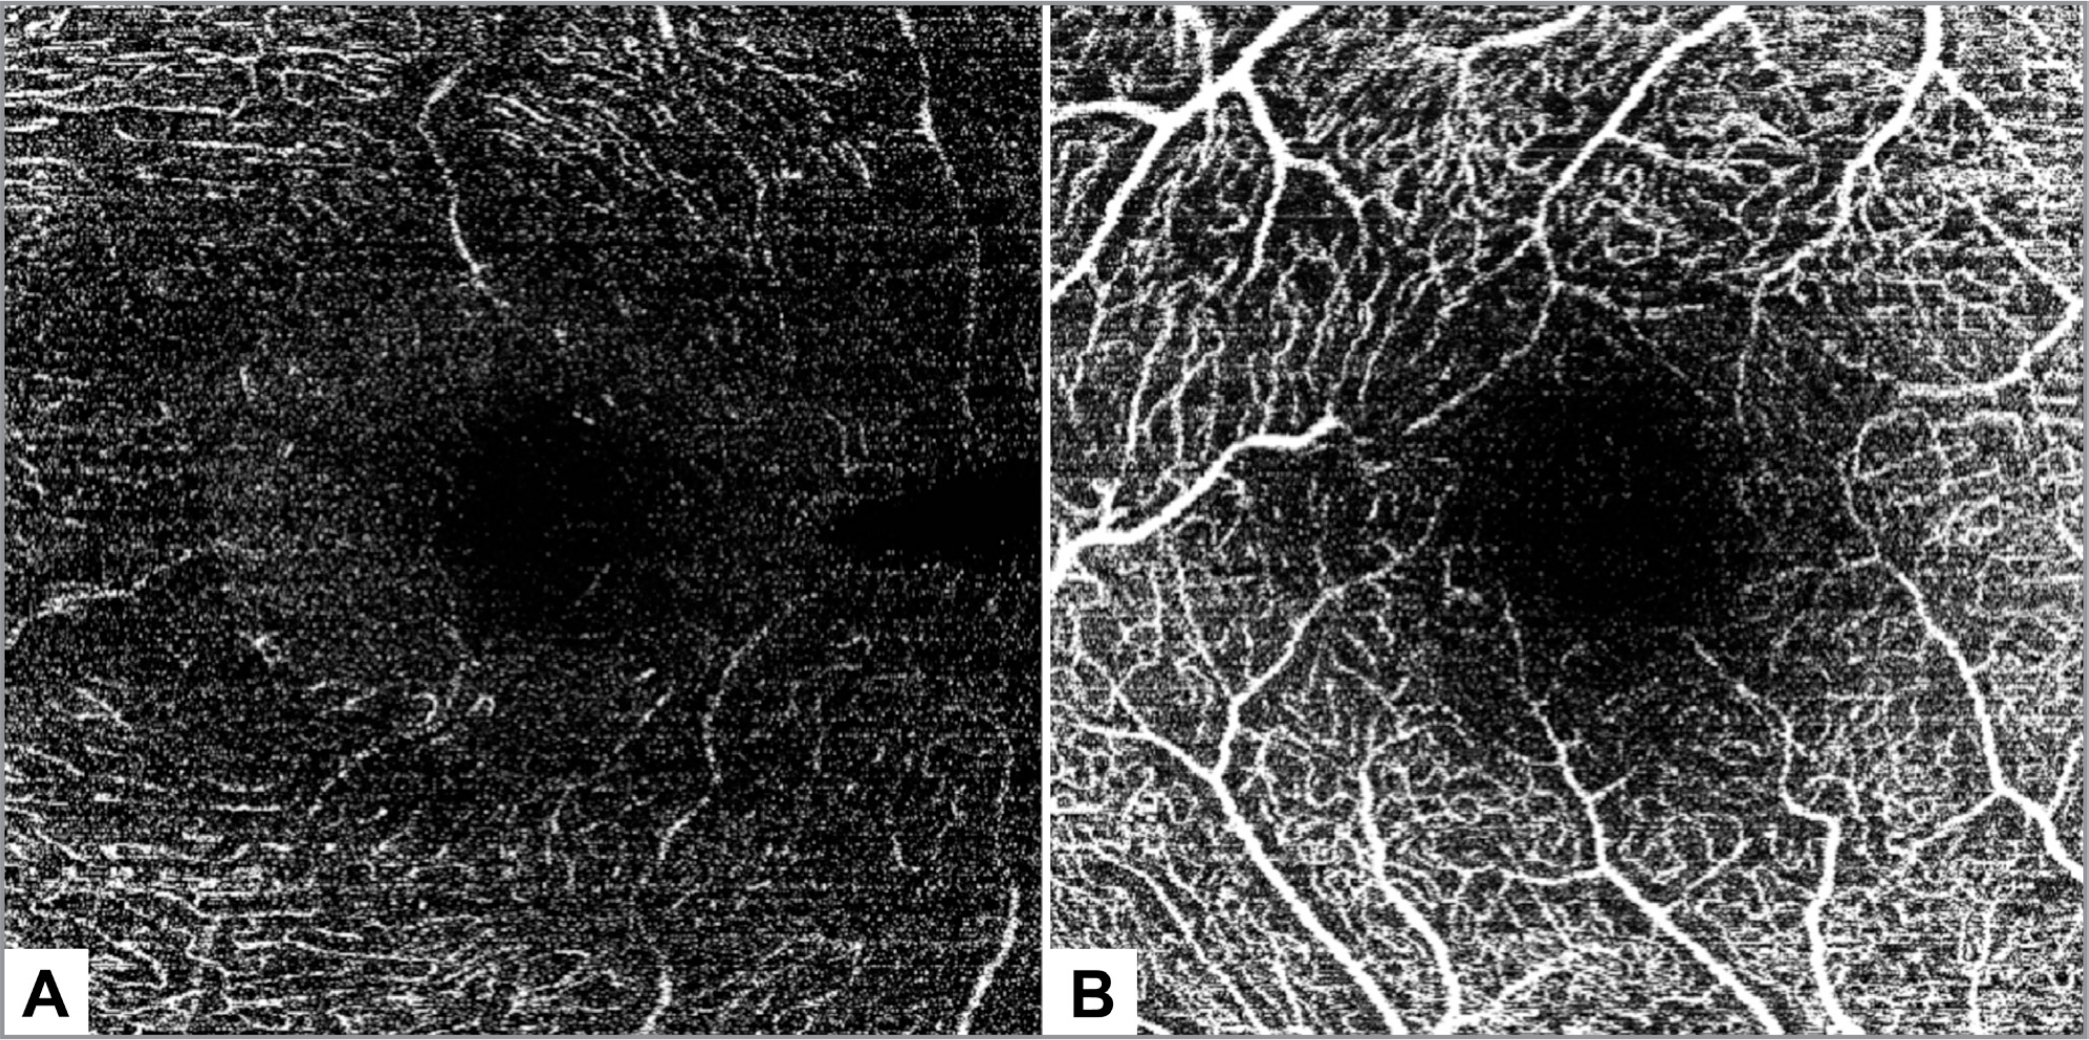 Nerve fiber layer (NFL) and ganglion cell layer (GCL) vascular networks, as acquired by the Heidelberg optical coherence tomography angiography machine (Heidelberg Engineering, Heidelberg, Germany). (A) The NFL vascular network of the left eye of a 29-year-old woman. The foveal avascular zone (FAZ) is barely visible. (B) The GCL vascular network in the right eye of a 35-year-old woman. Although the FAZ is seen more clearly, it was not delineated clearly enough to allow for its correct measurement.